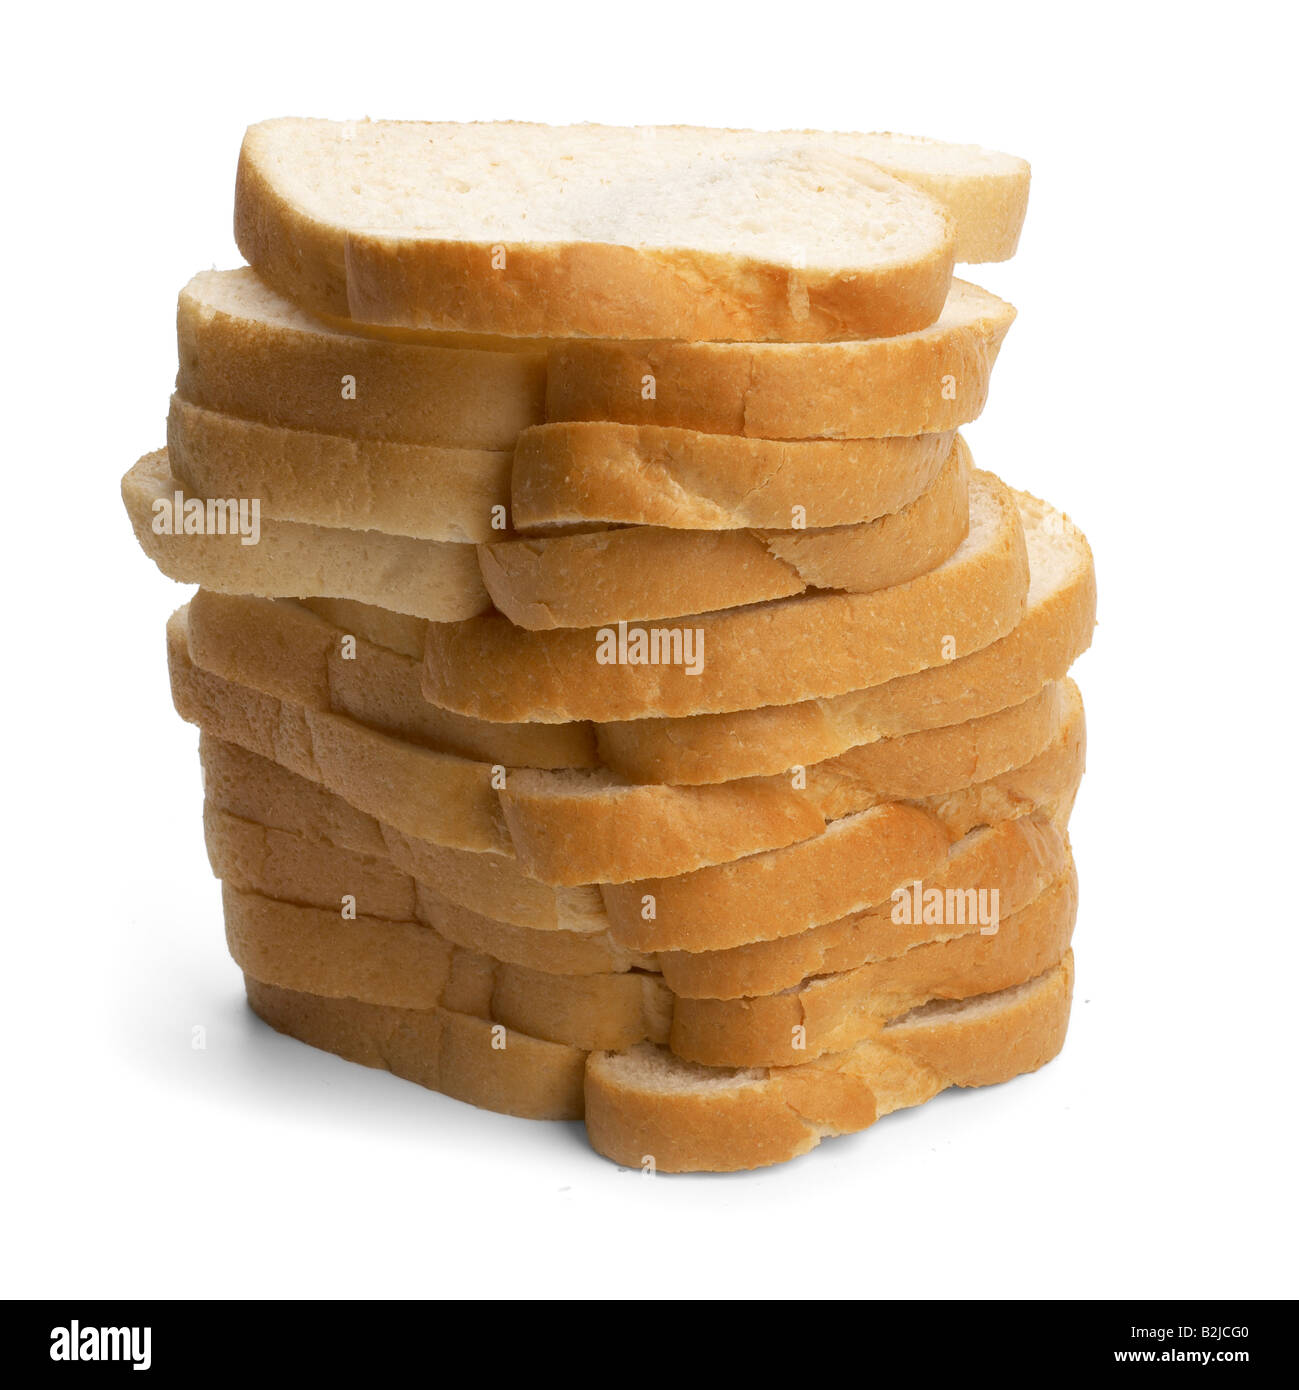 Pile of white bread slices - Stock Image